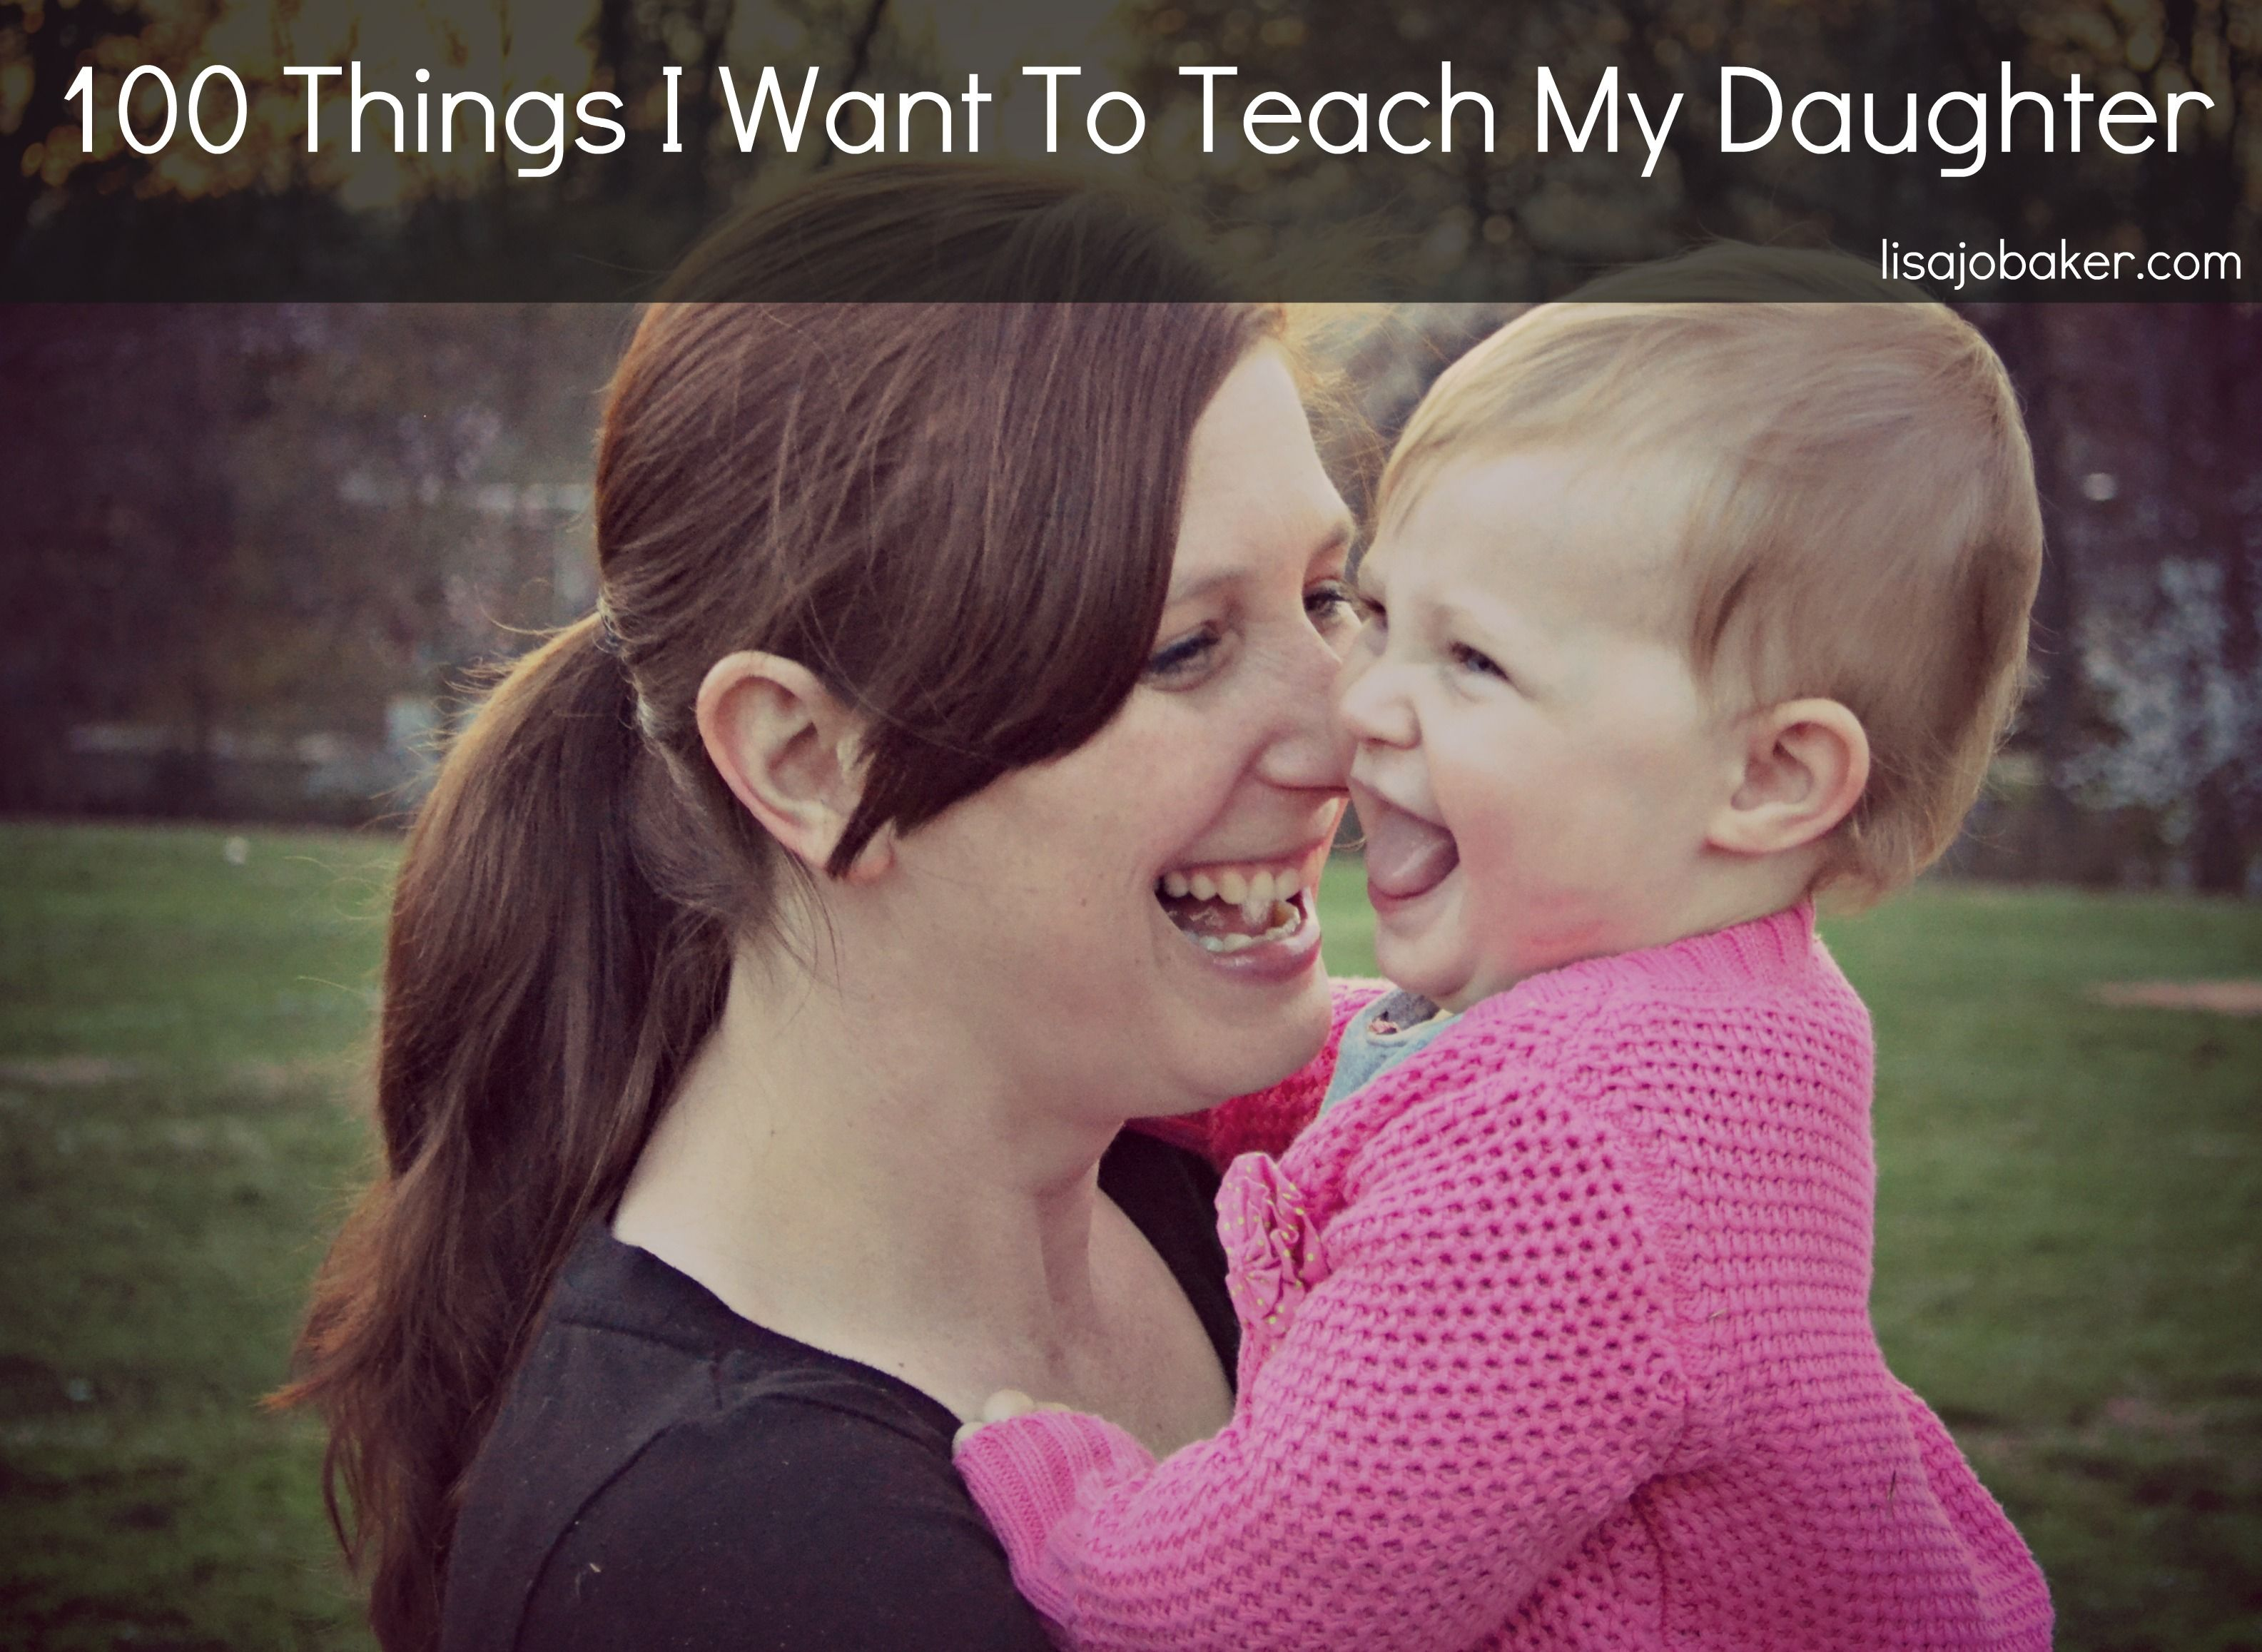 100 Things I Want to Teach My Daughter- all girls should read this list no matter how old.  Wow I love this list, this is the best one of these I've seen by far!